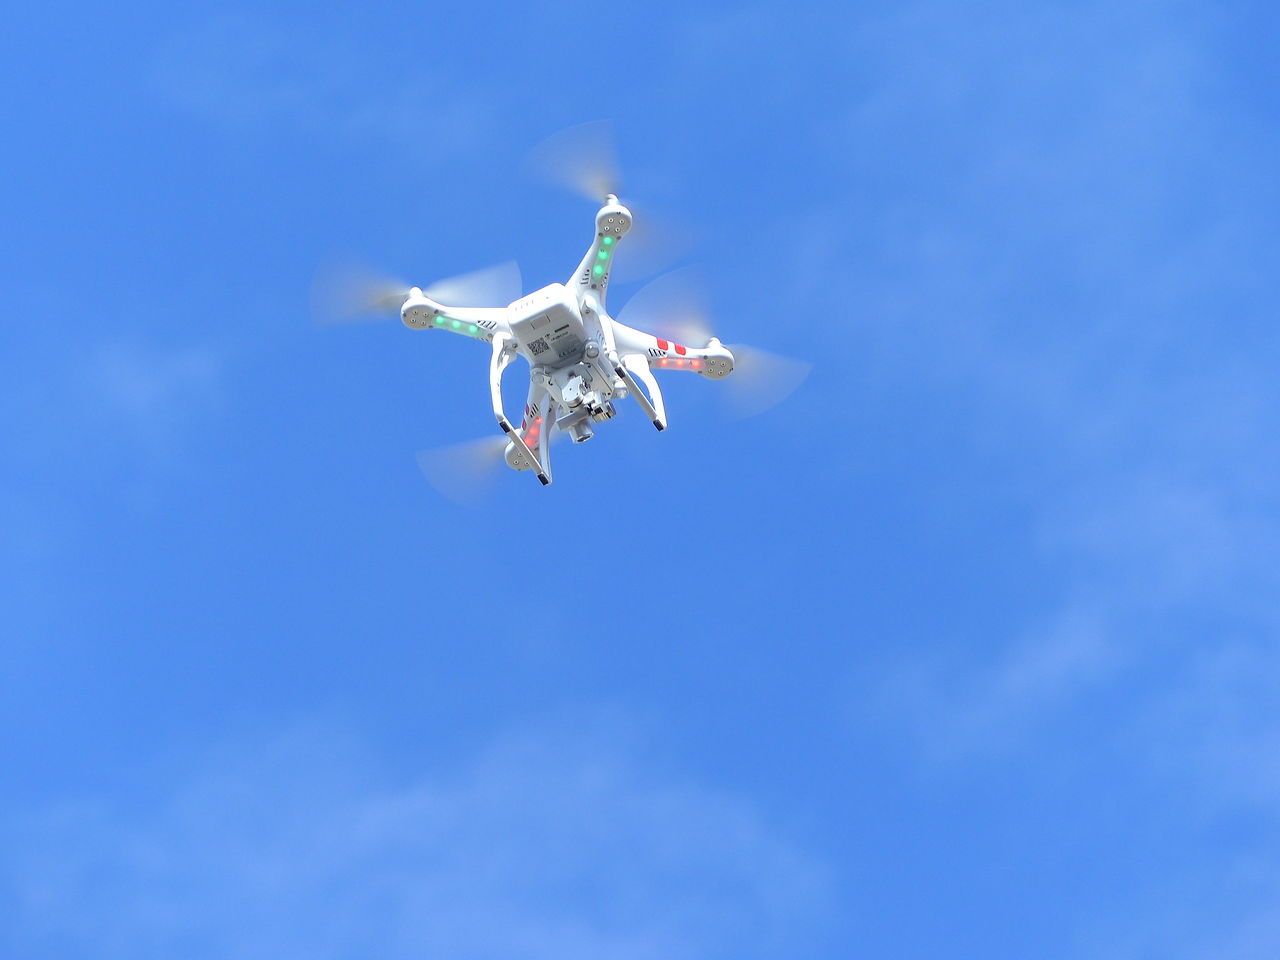 DJI Phantom In Flight